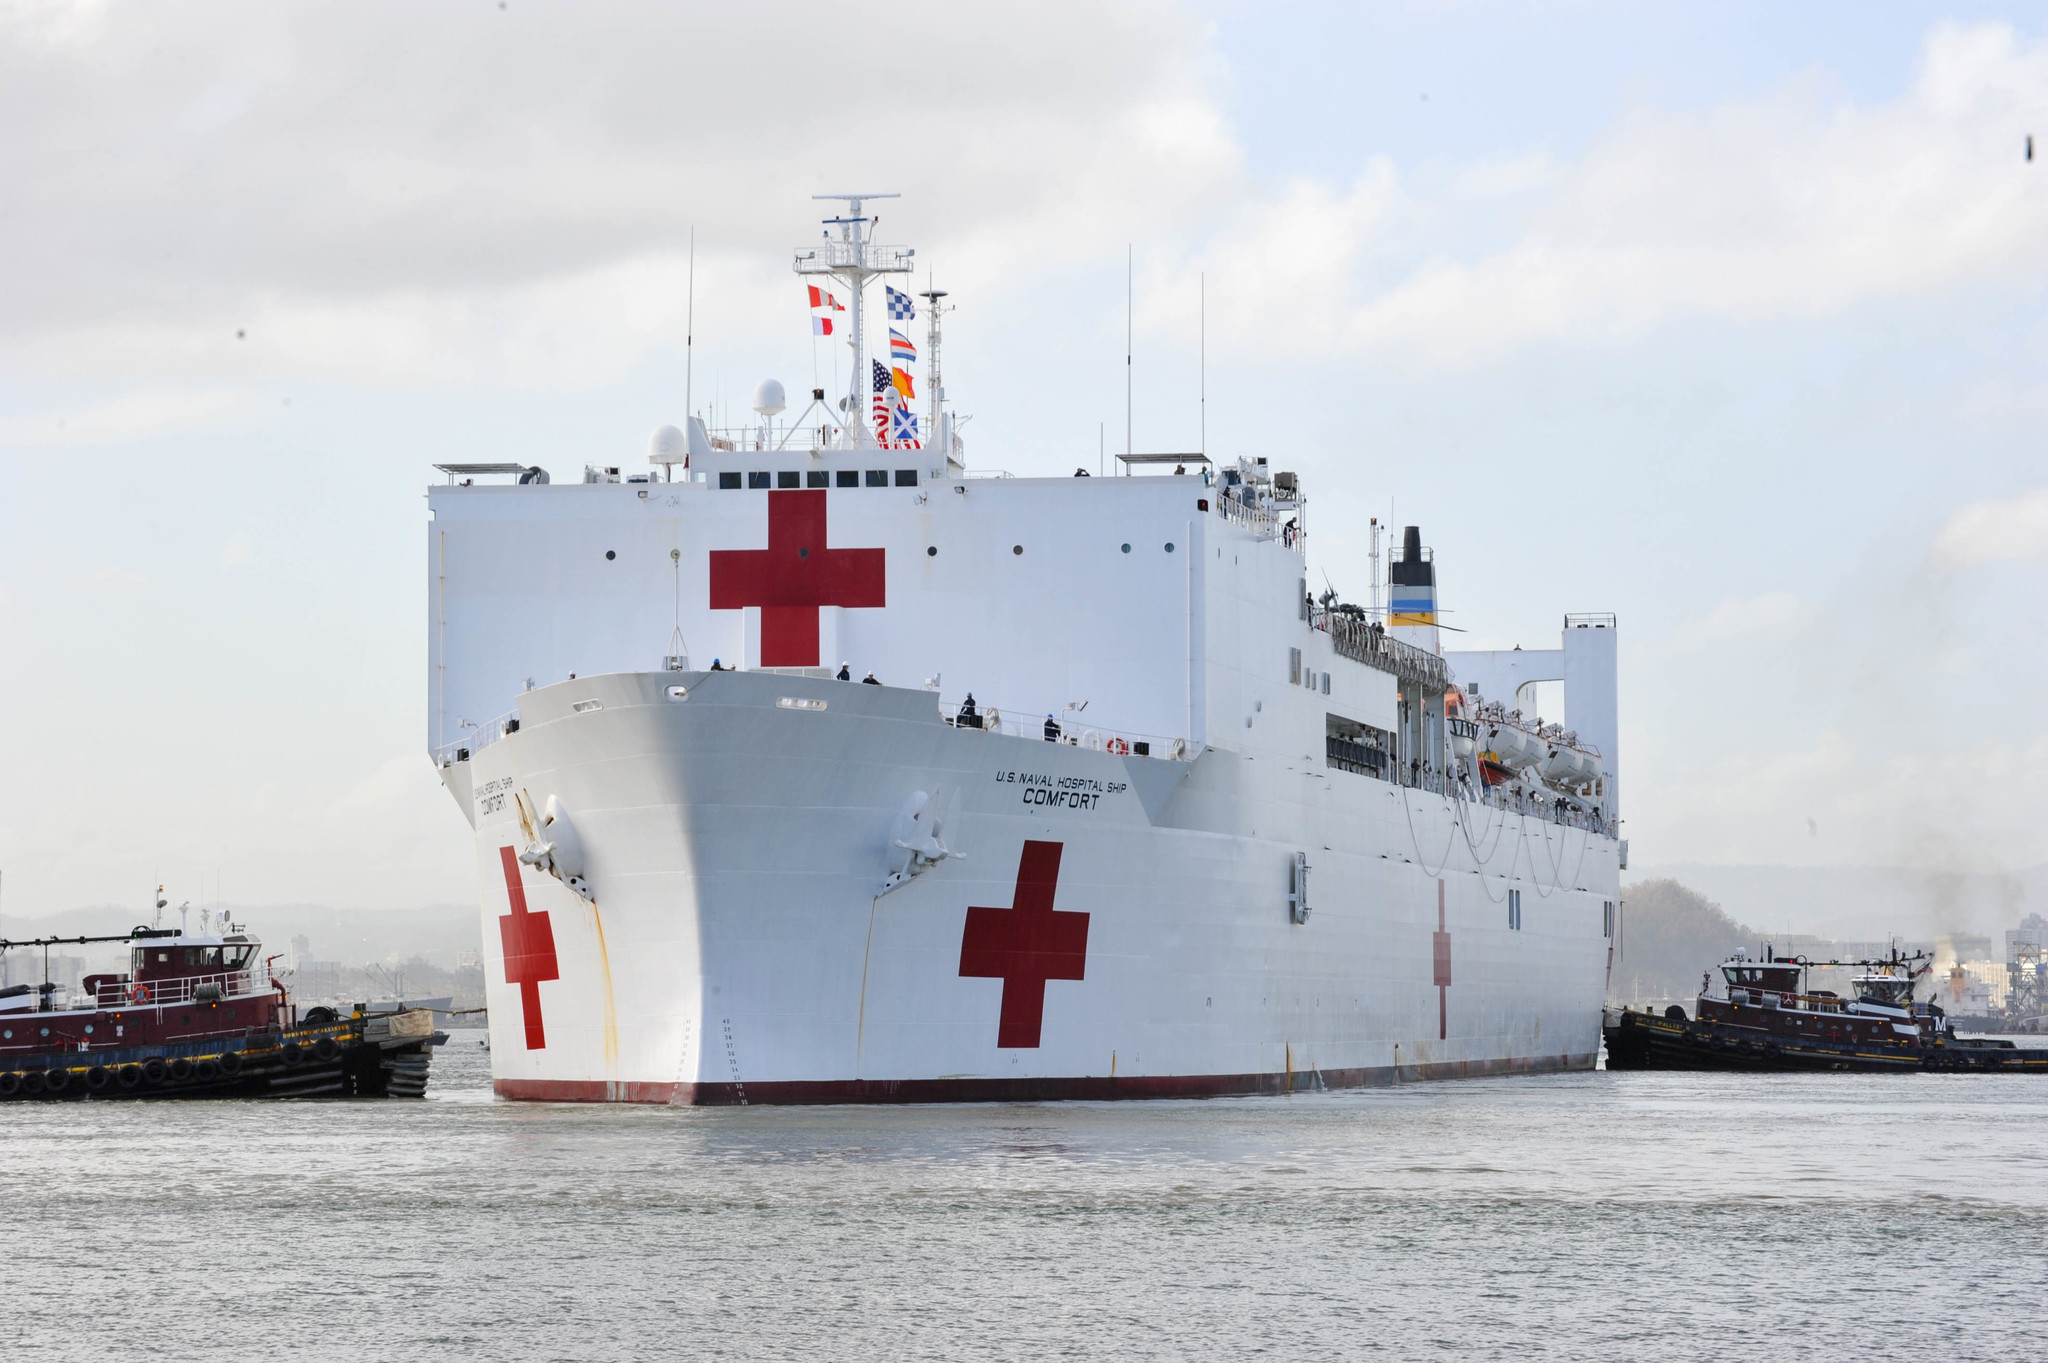 NY Harbor dredging underway to clear smooth arrival of USNS Comfort for its arrival in Manhattan next week